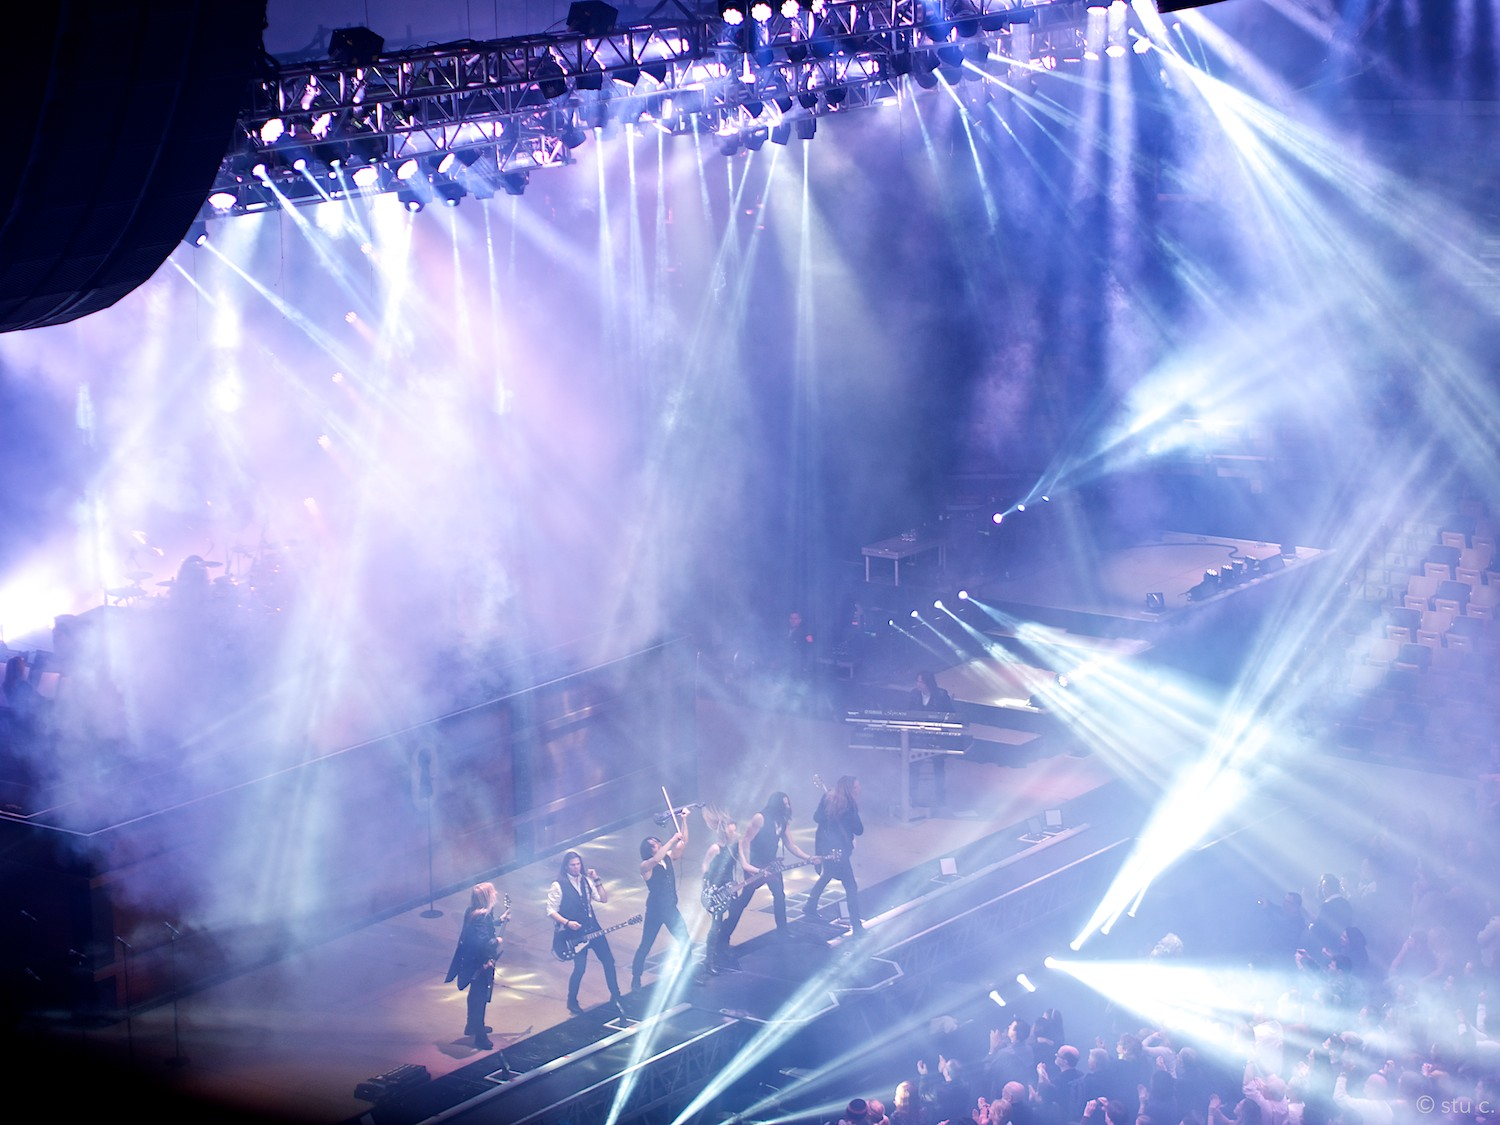 Part of the climax, most musicians are on stage, lights are going crazy